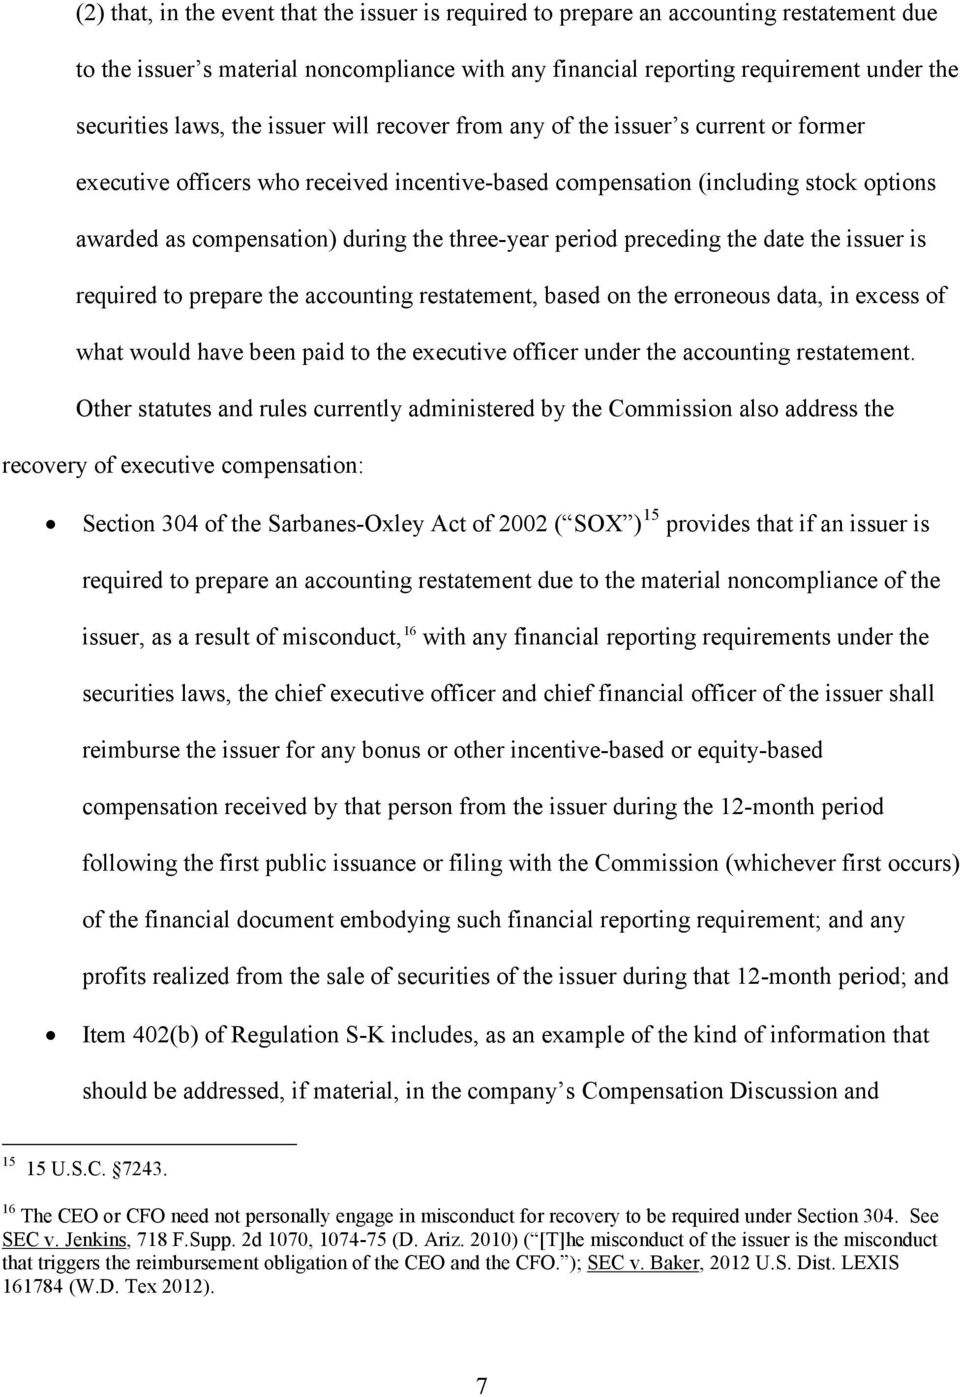 period preceding the date the issuer is required to prepare the accounting restatement, based on the erroneous data, in excess of what would have been paid to the executive officer under the